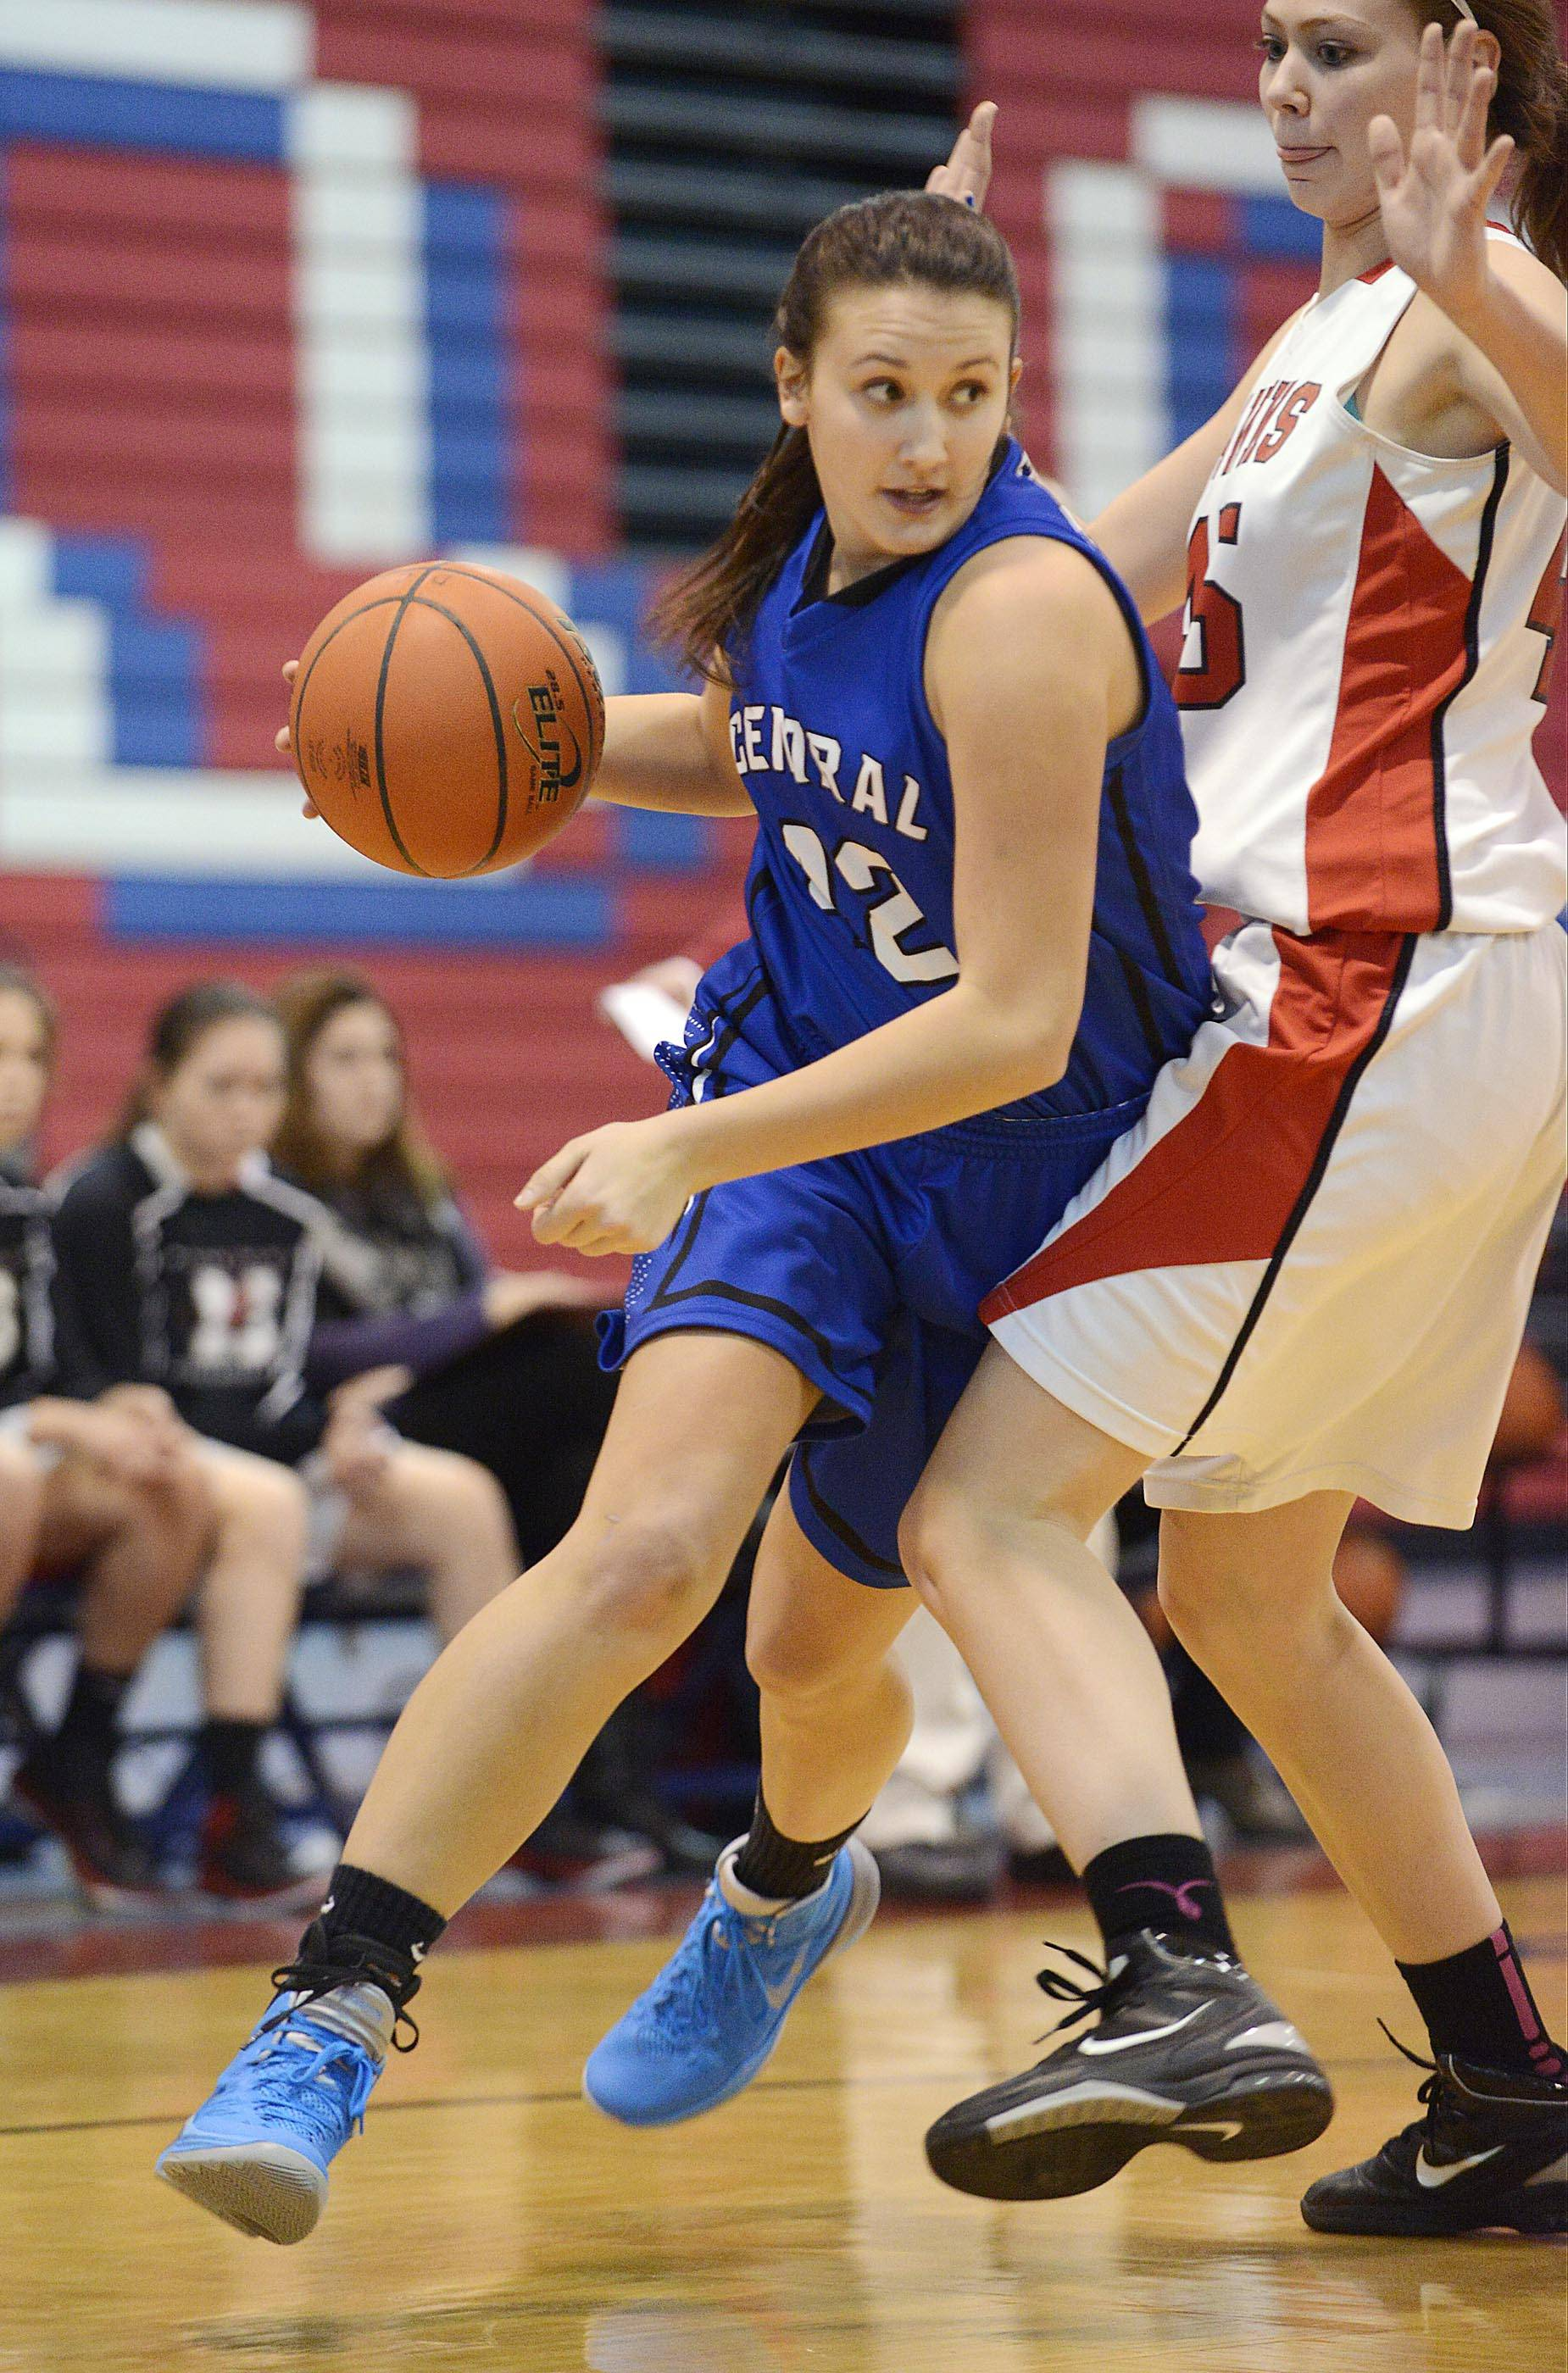 Burlington Central and junior forward Alison Colby will compete in the Class 3A Aurora Central Catholic regional beginning on Tuesday.